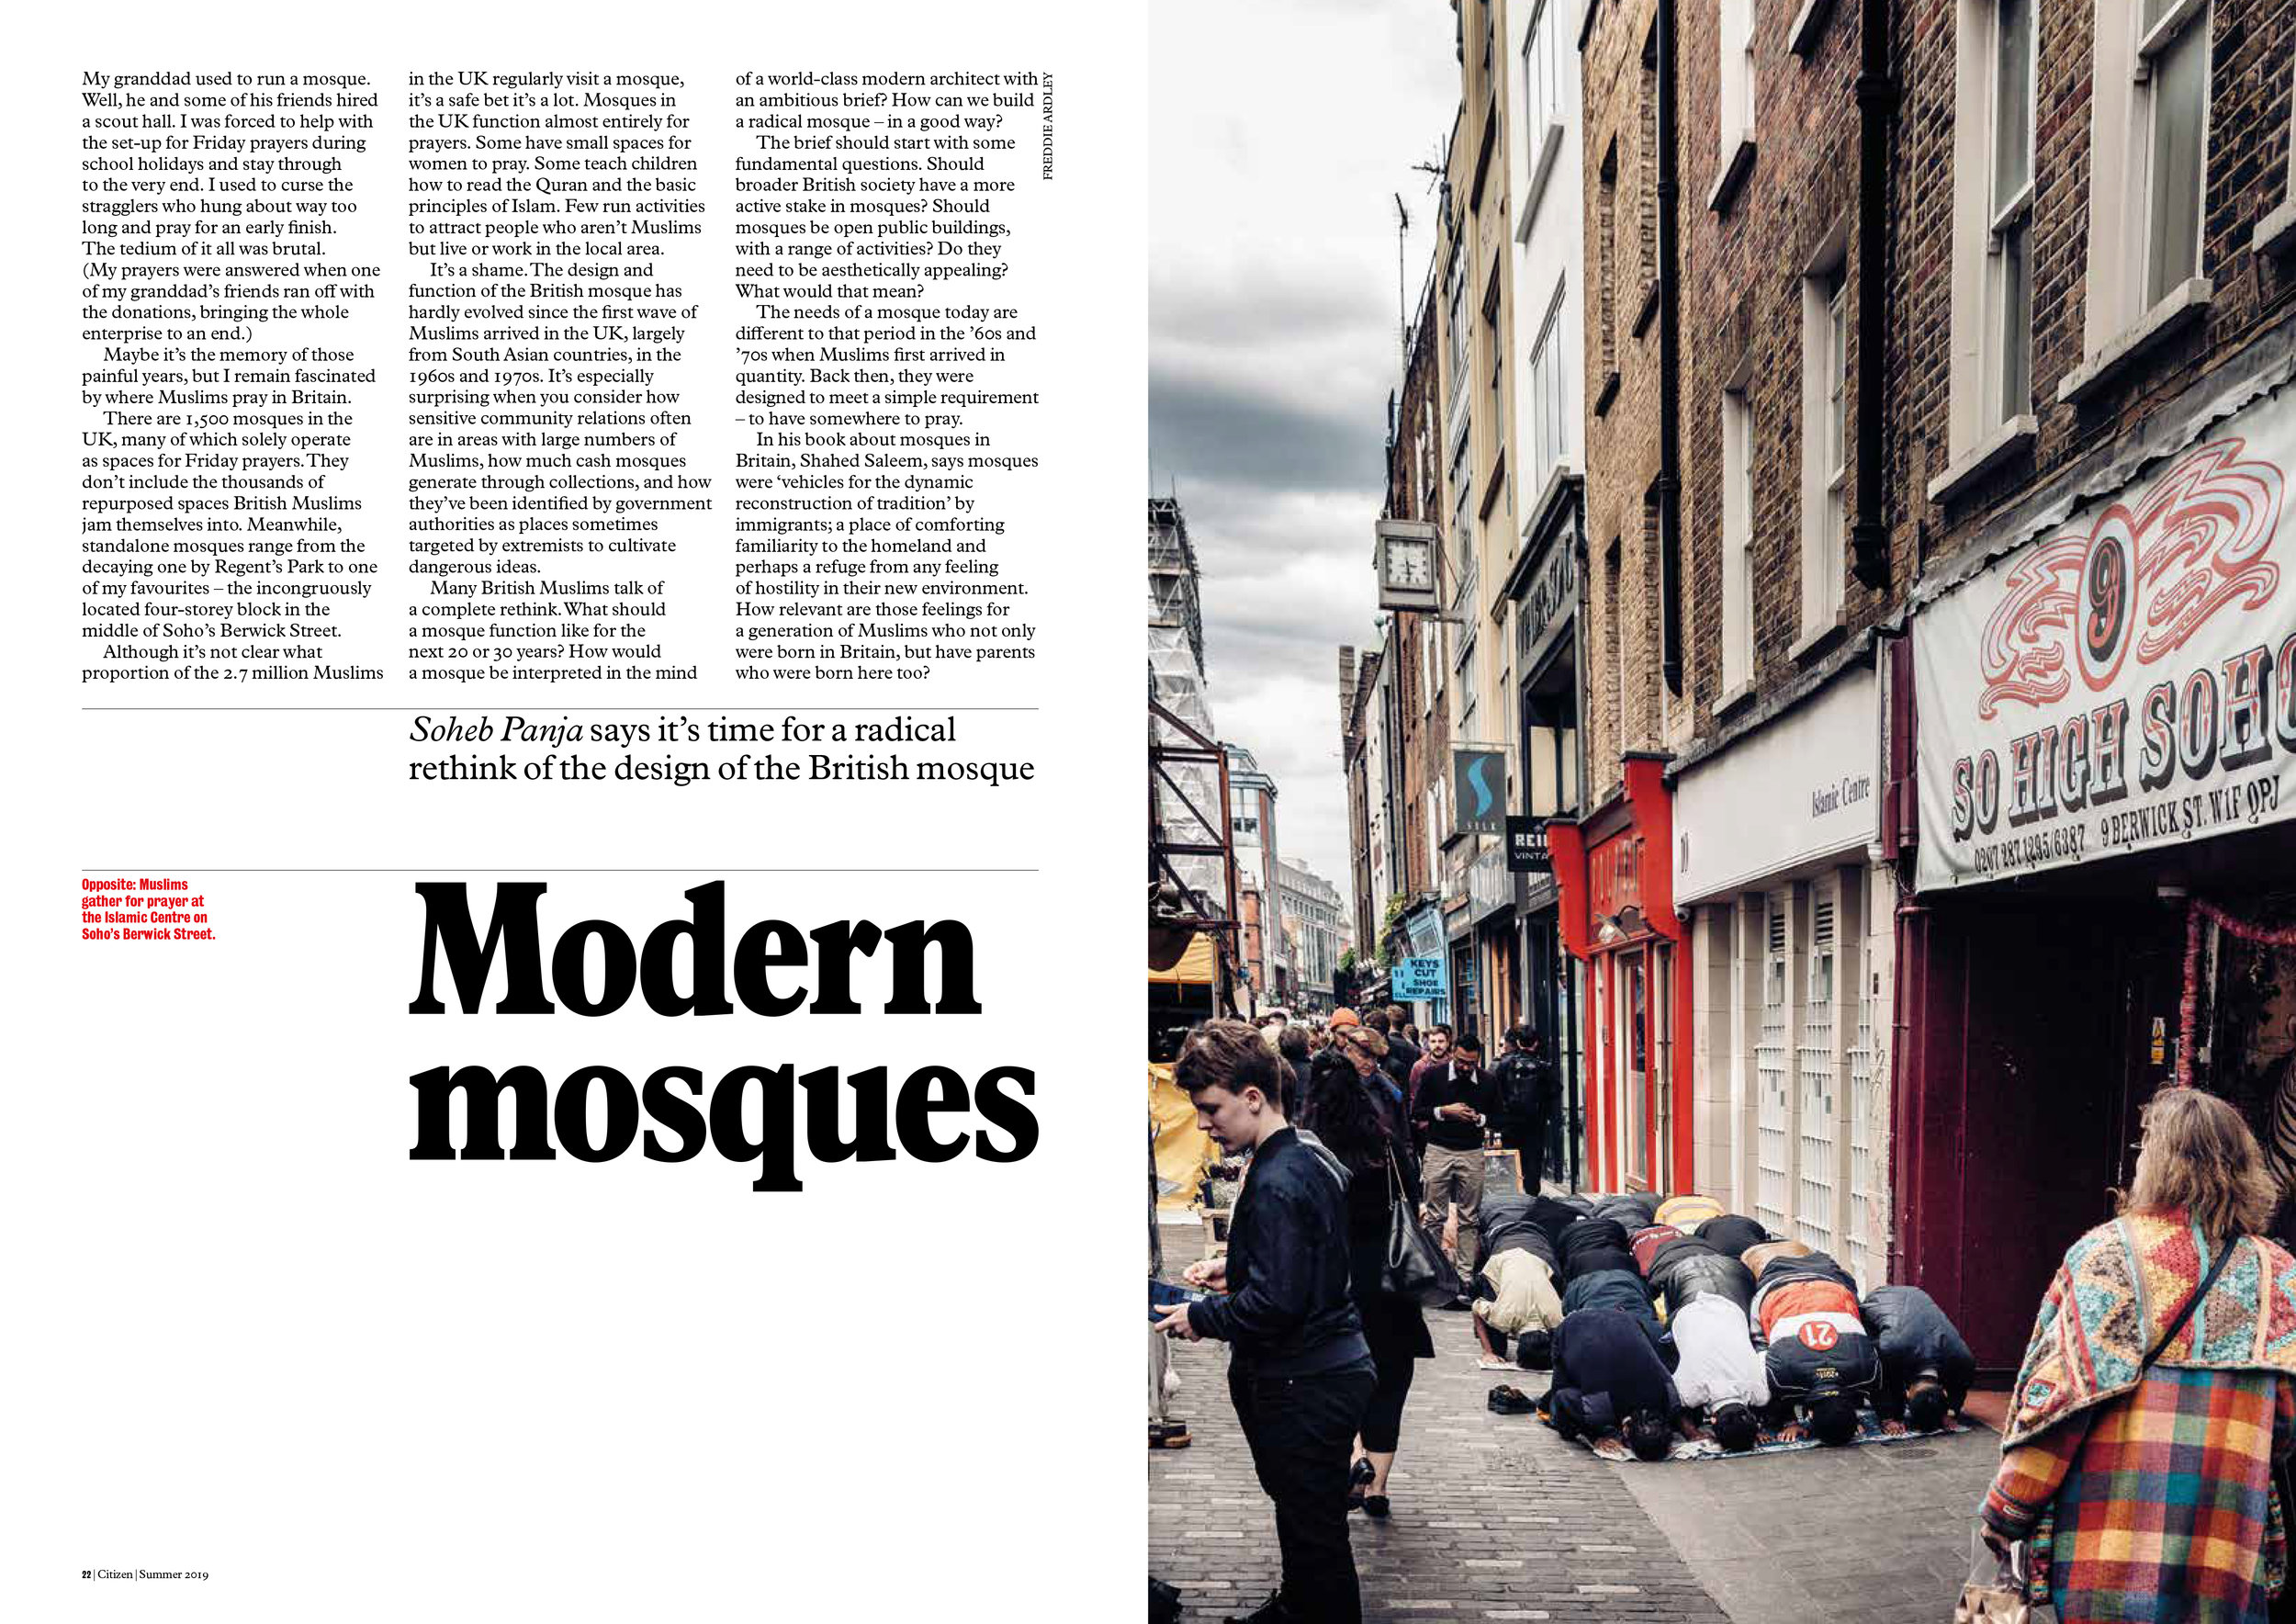 Modern Mosques. Photograph by Freddie Ardley.